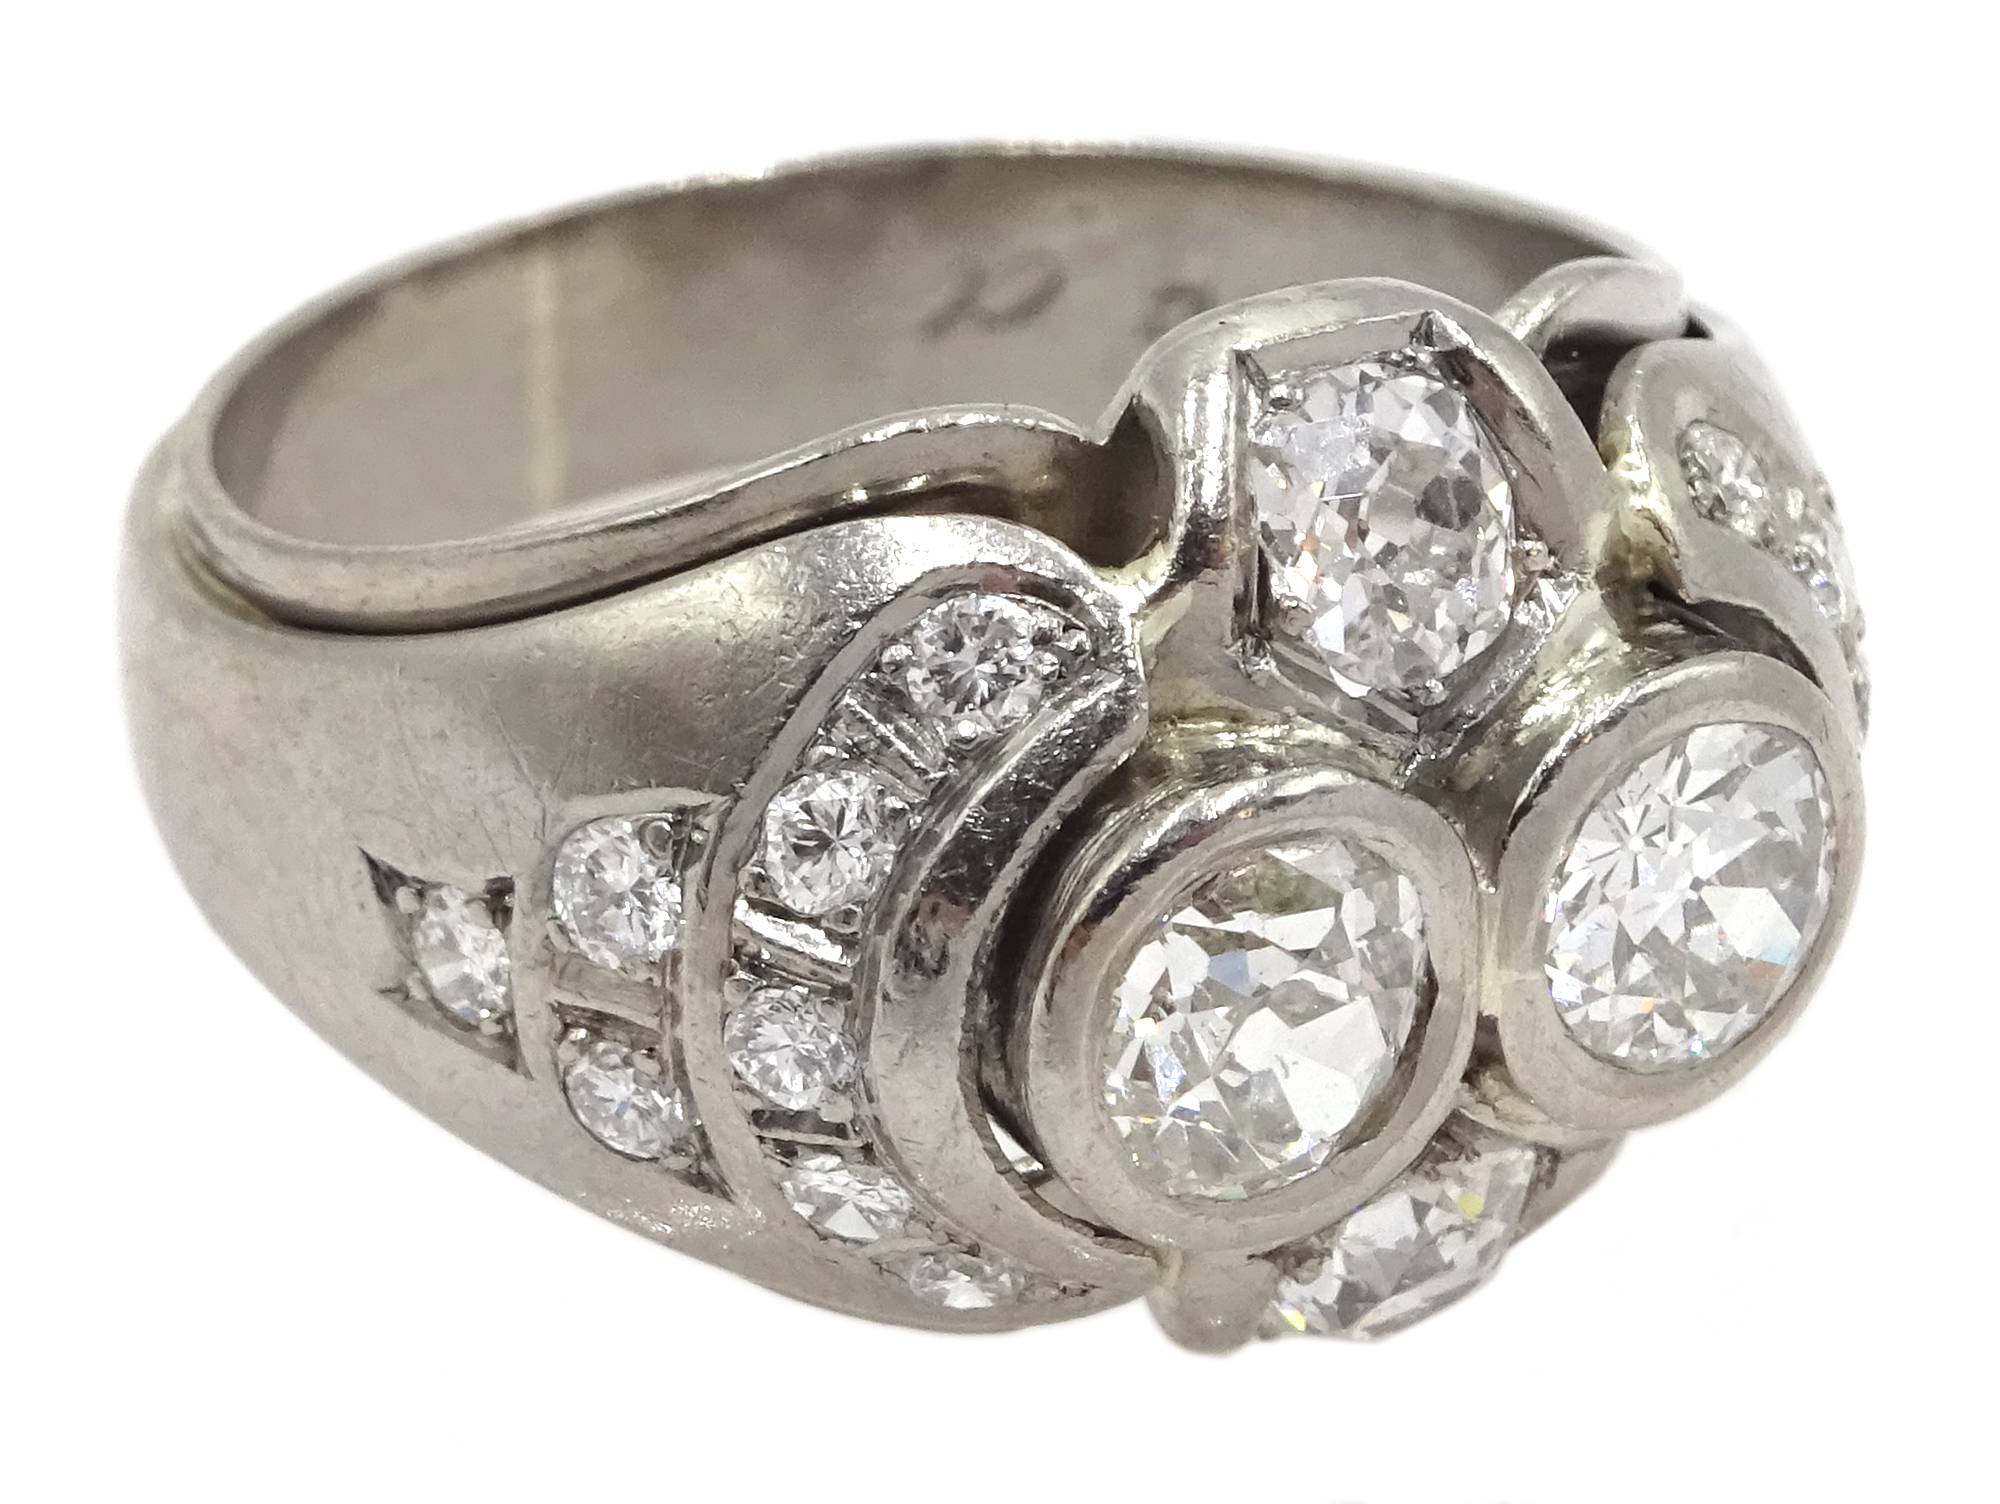 Continental 14ct white gold old cut and round brilliant cut diamond ring - Image 3 of 5